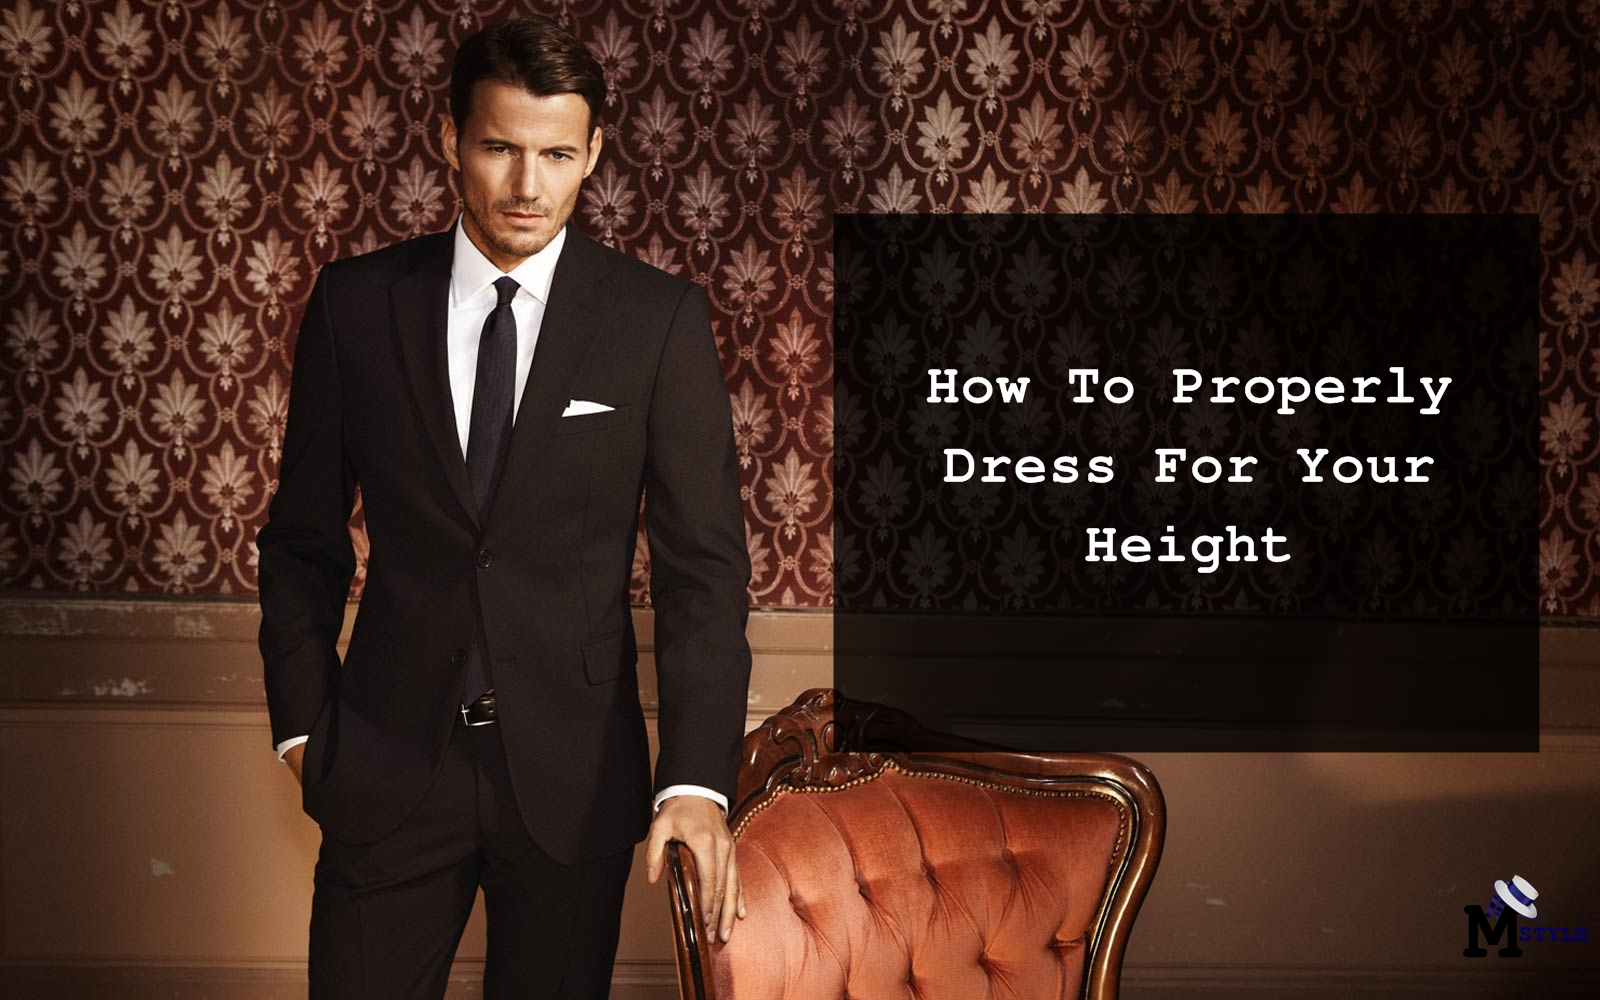 How To Properly Dress For Your Height - The Manly Style